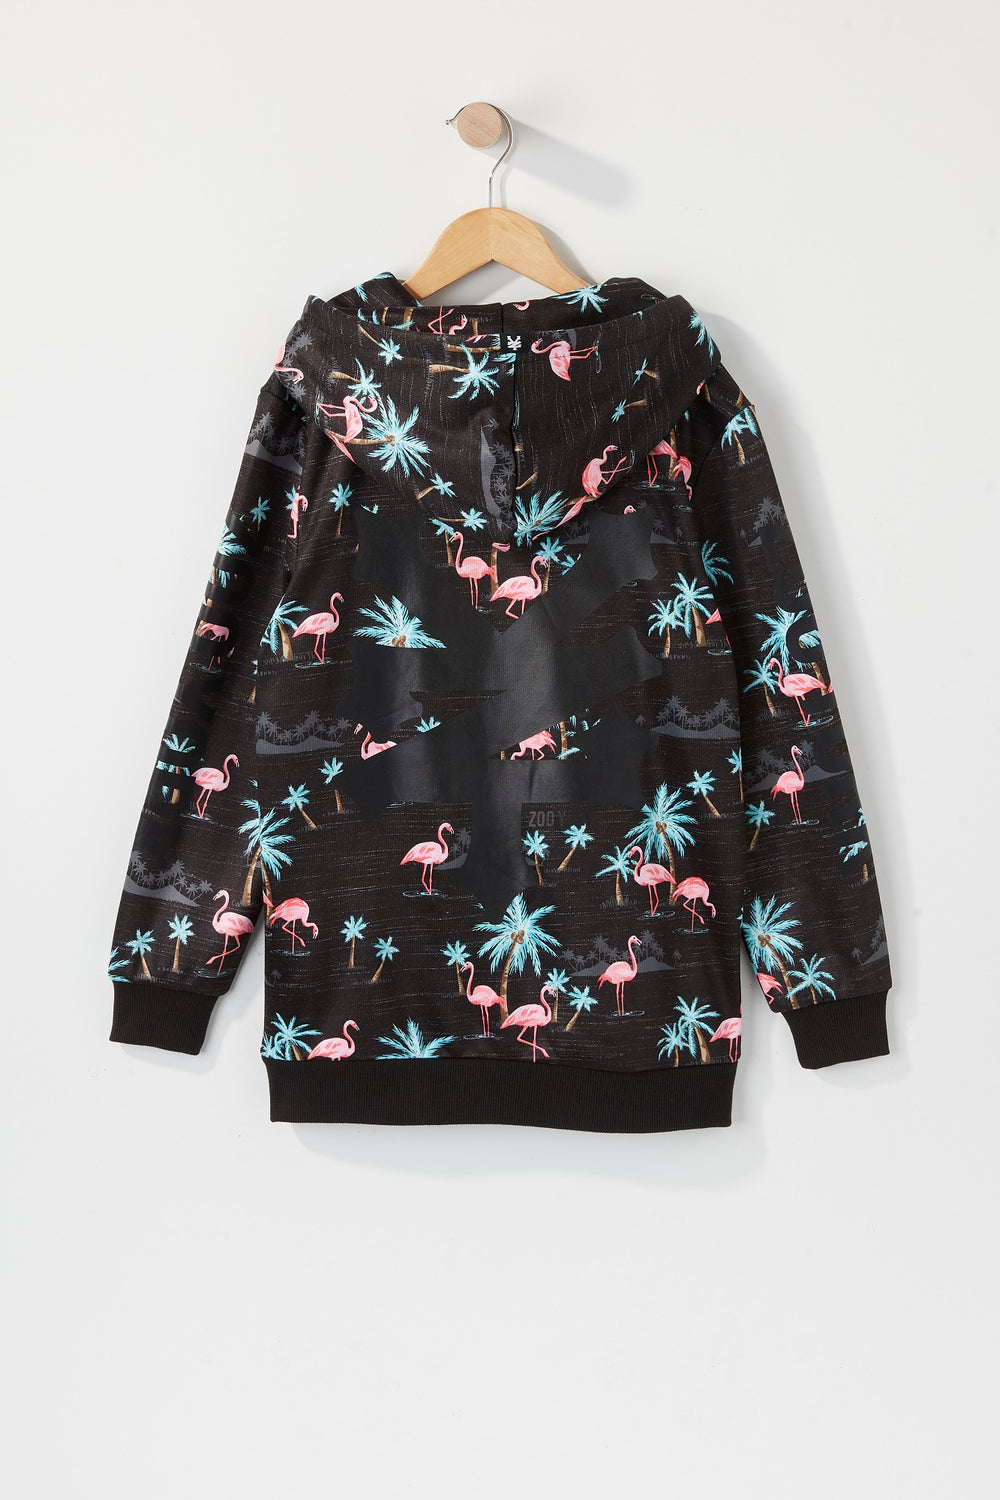 Zoo York Boys Pink Flamingo Print Hoodie Charcoal